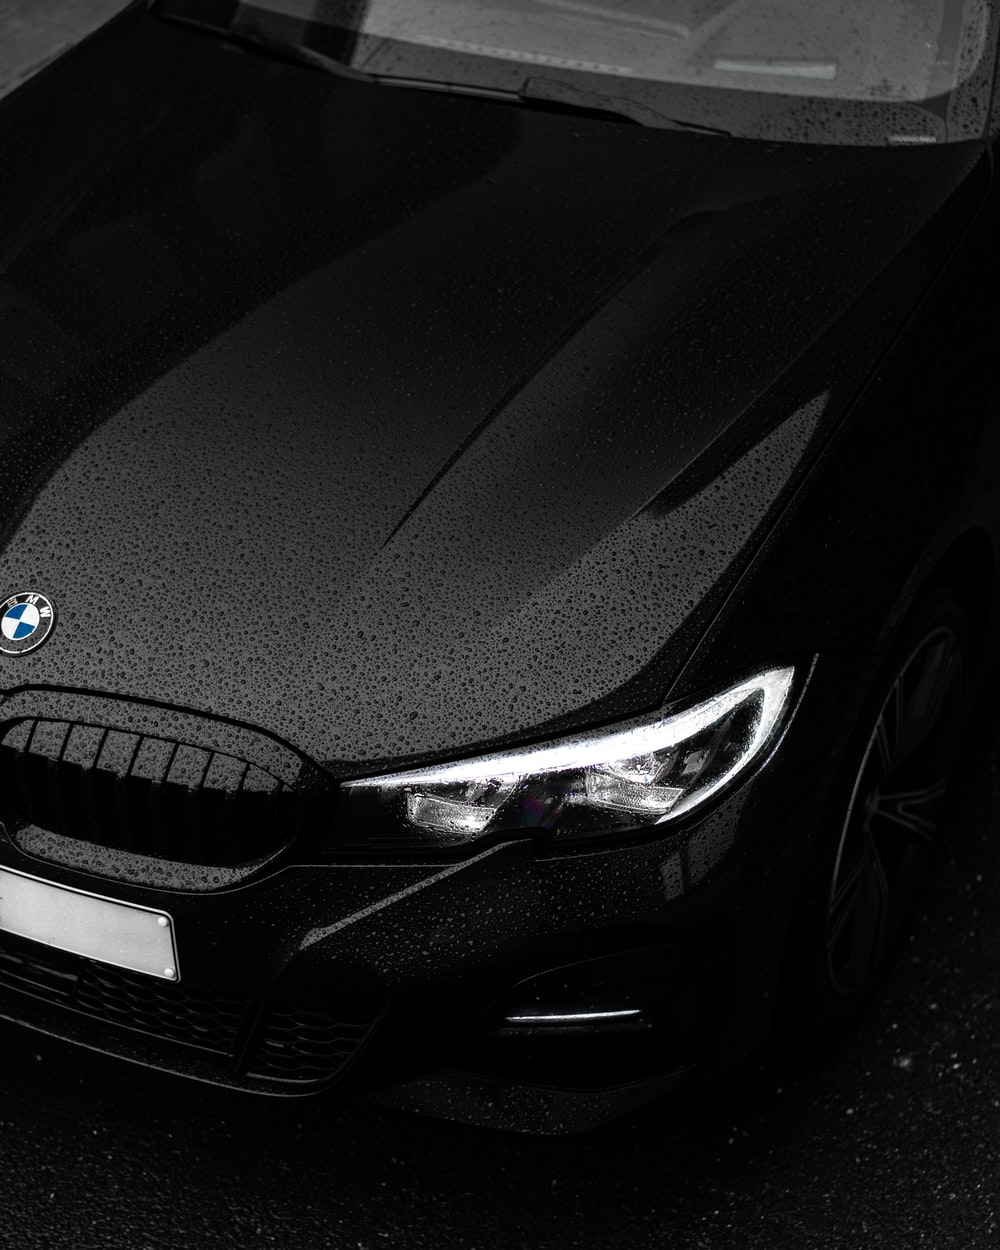 black bmw car in close up photography